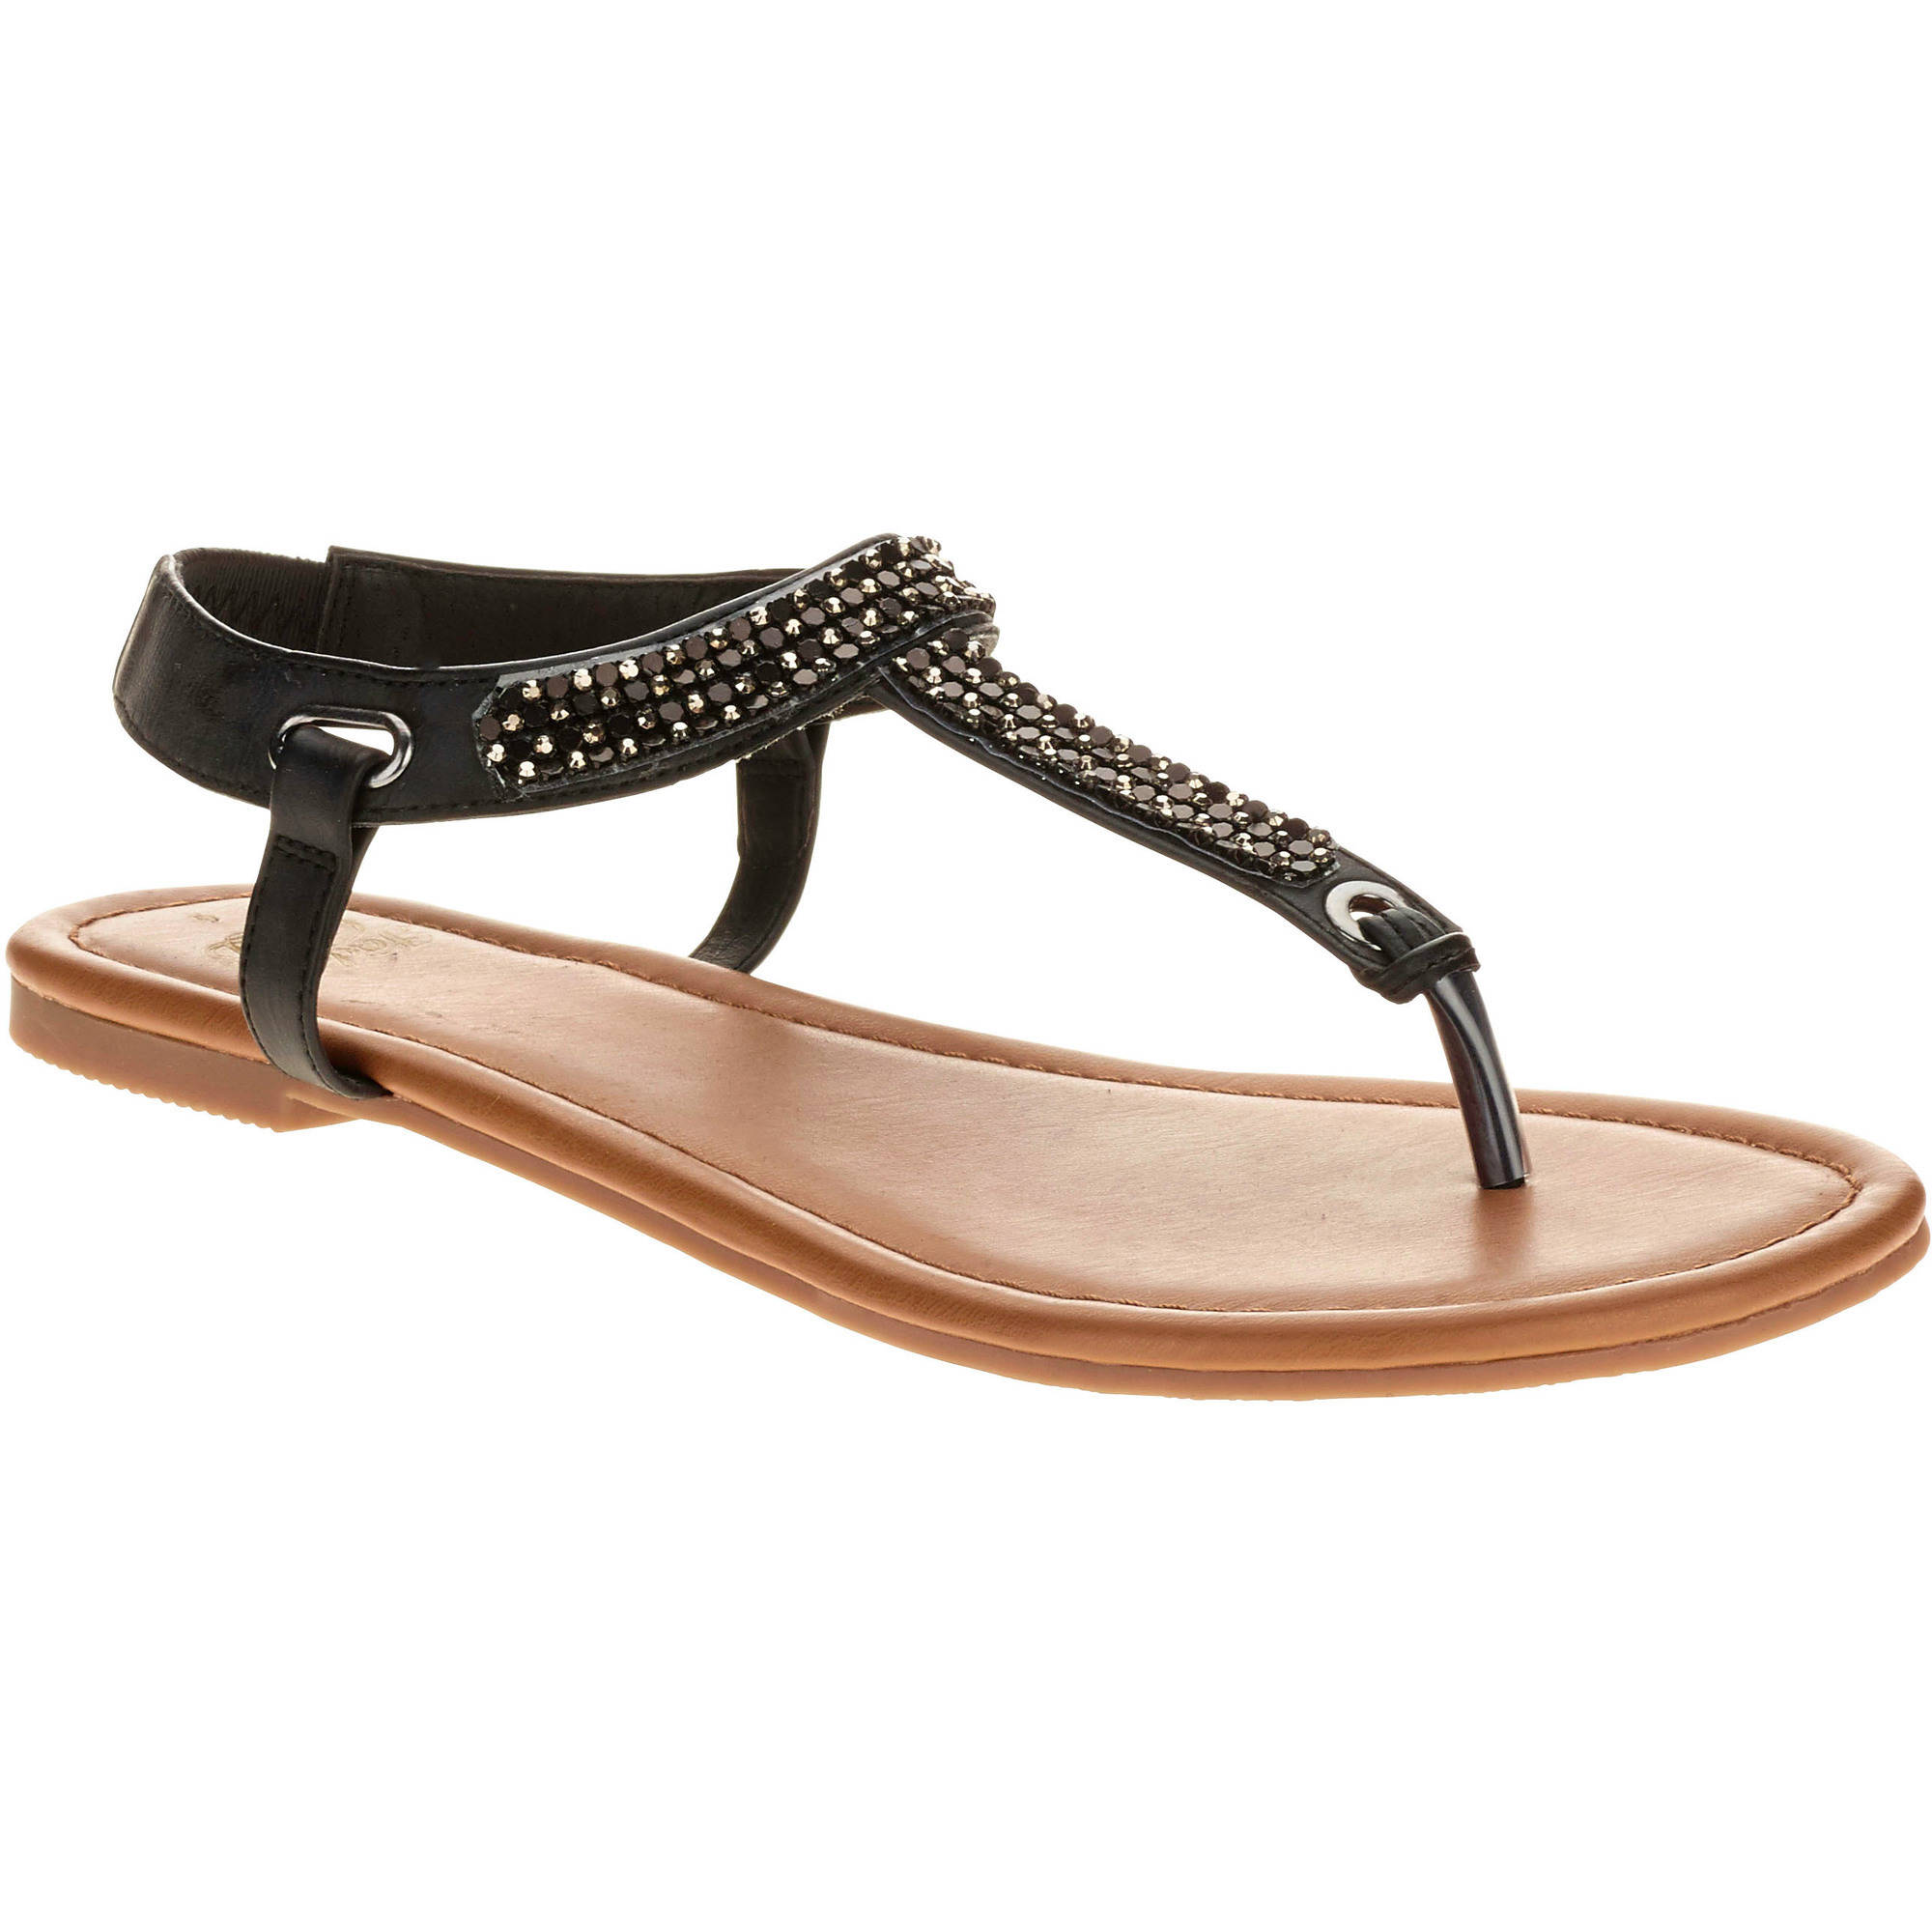 Faded Glory Women's Jewel Thong Sandal